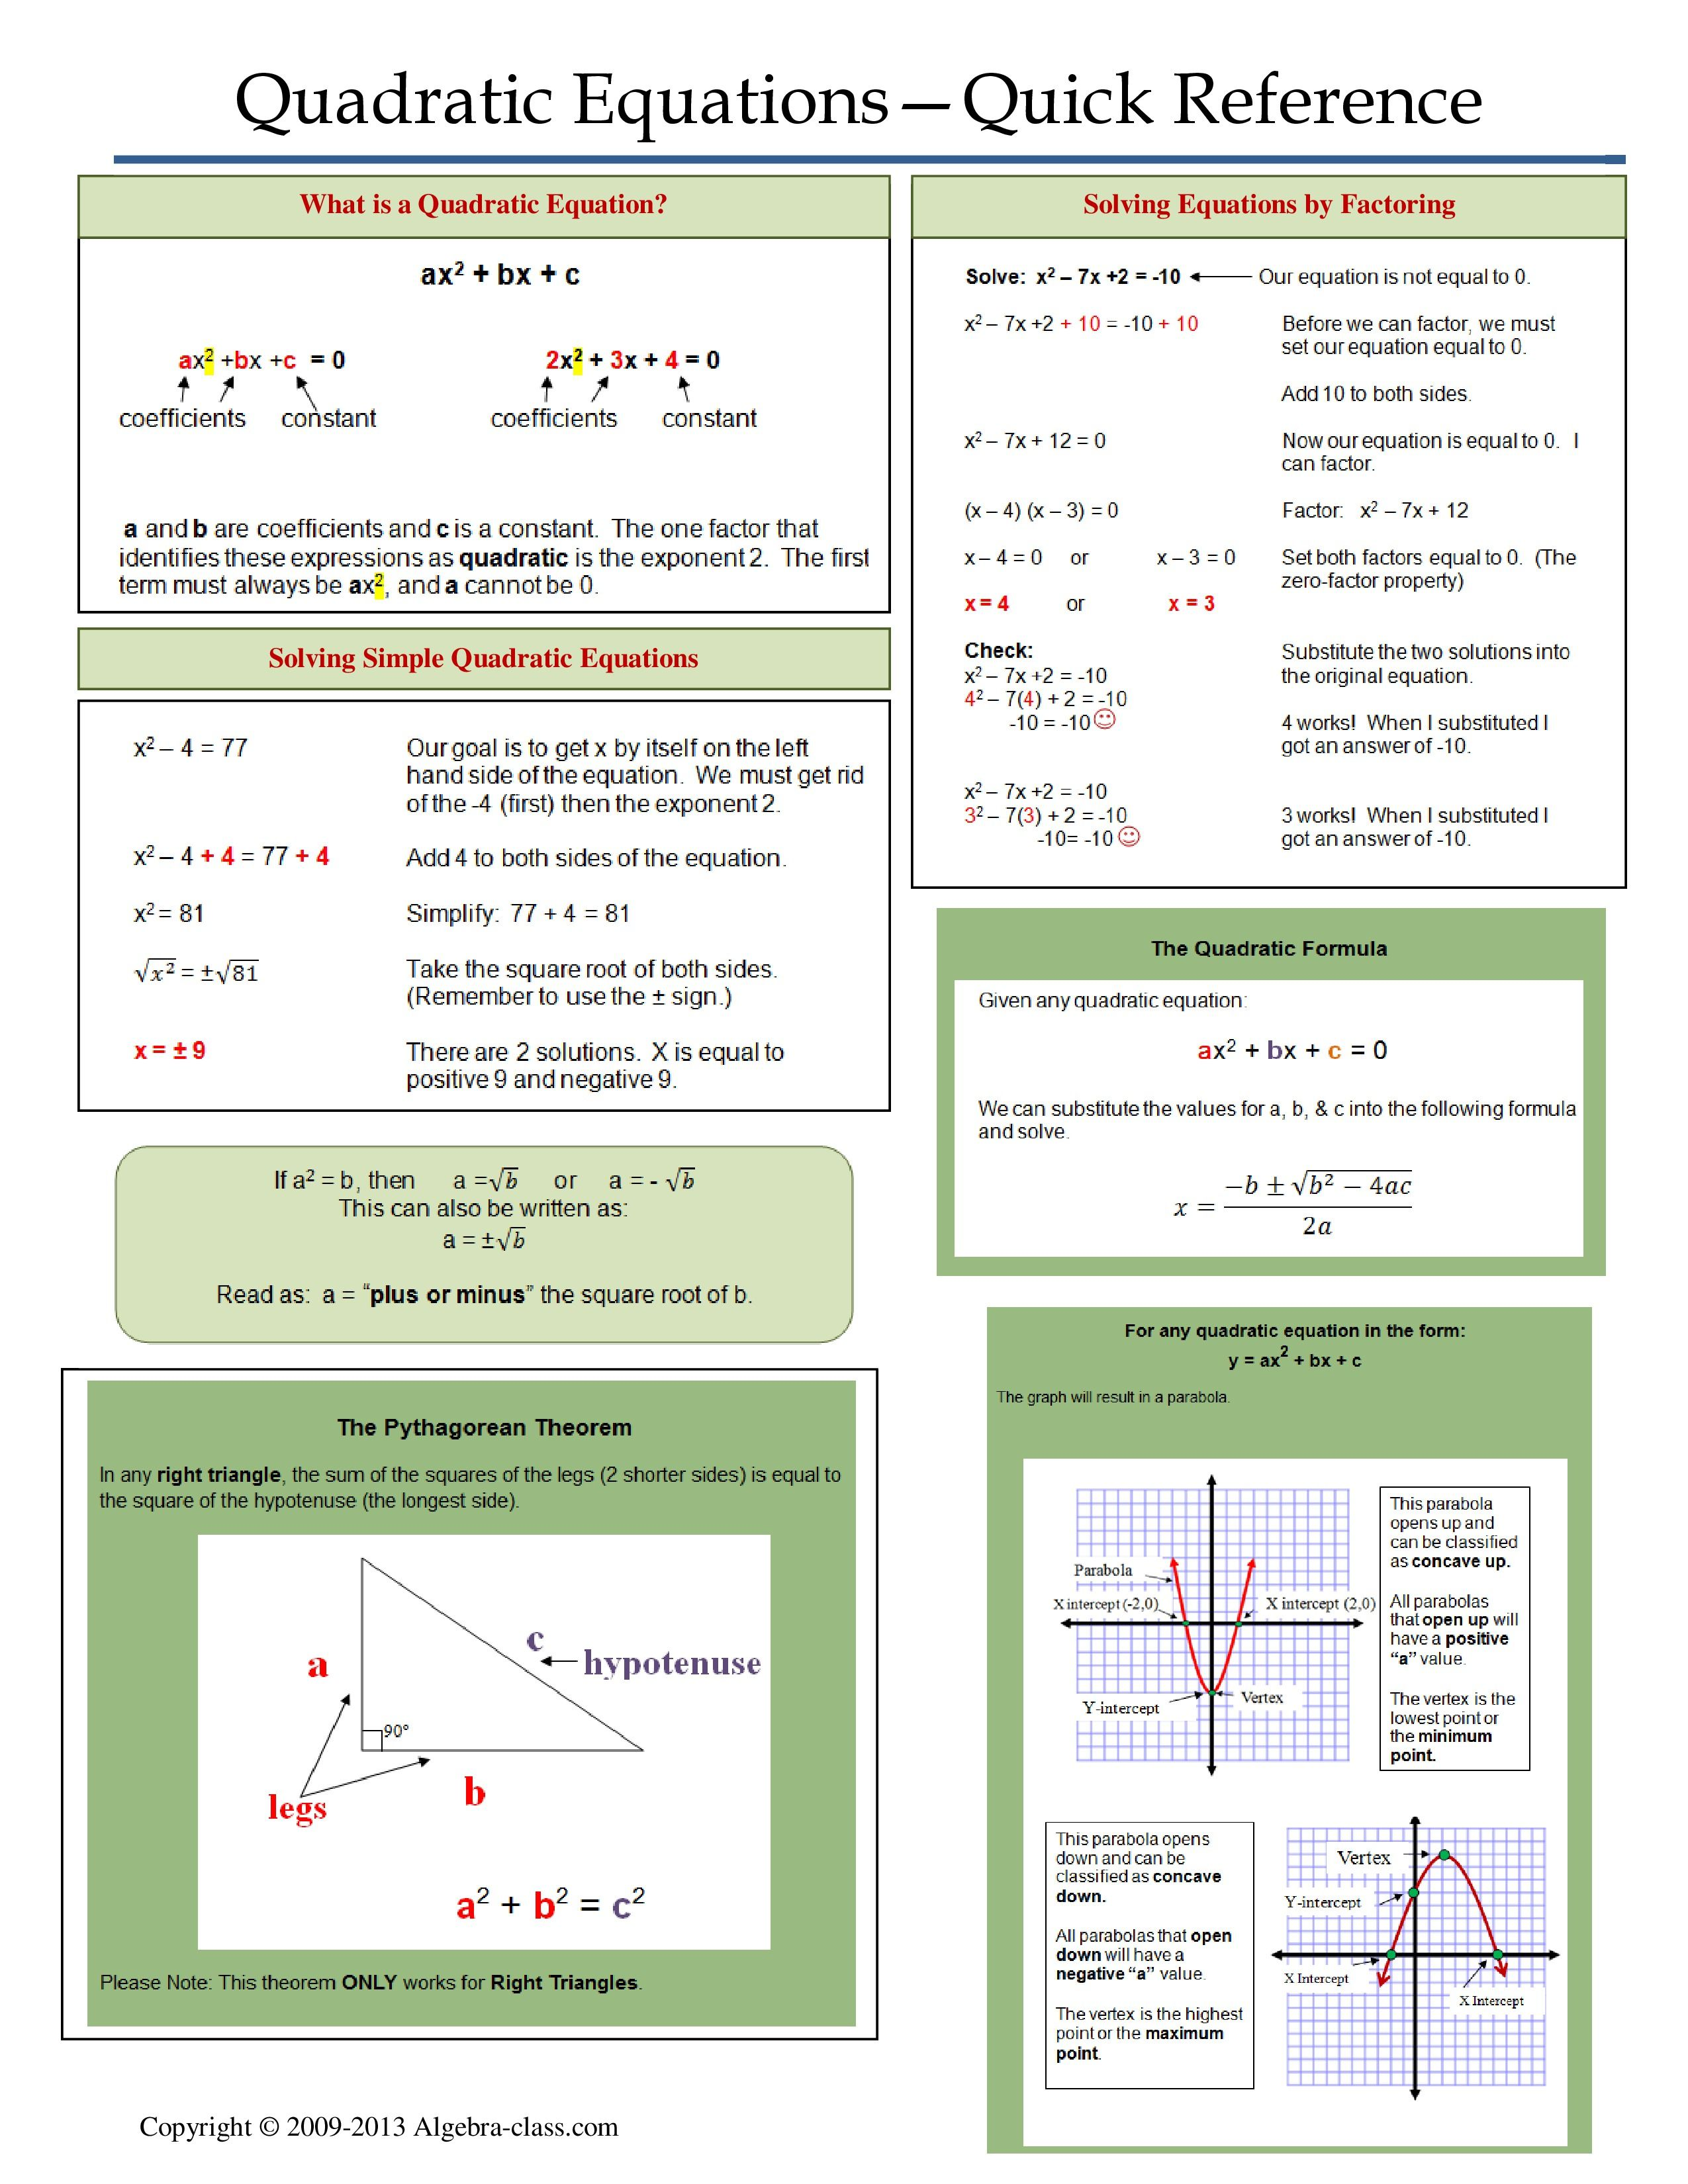 One page notes worksheet for Quadratic Equations Unit